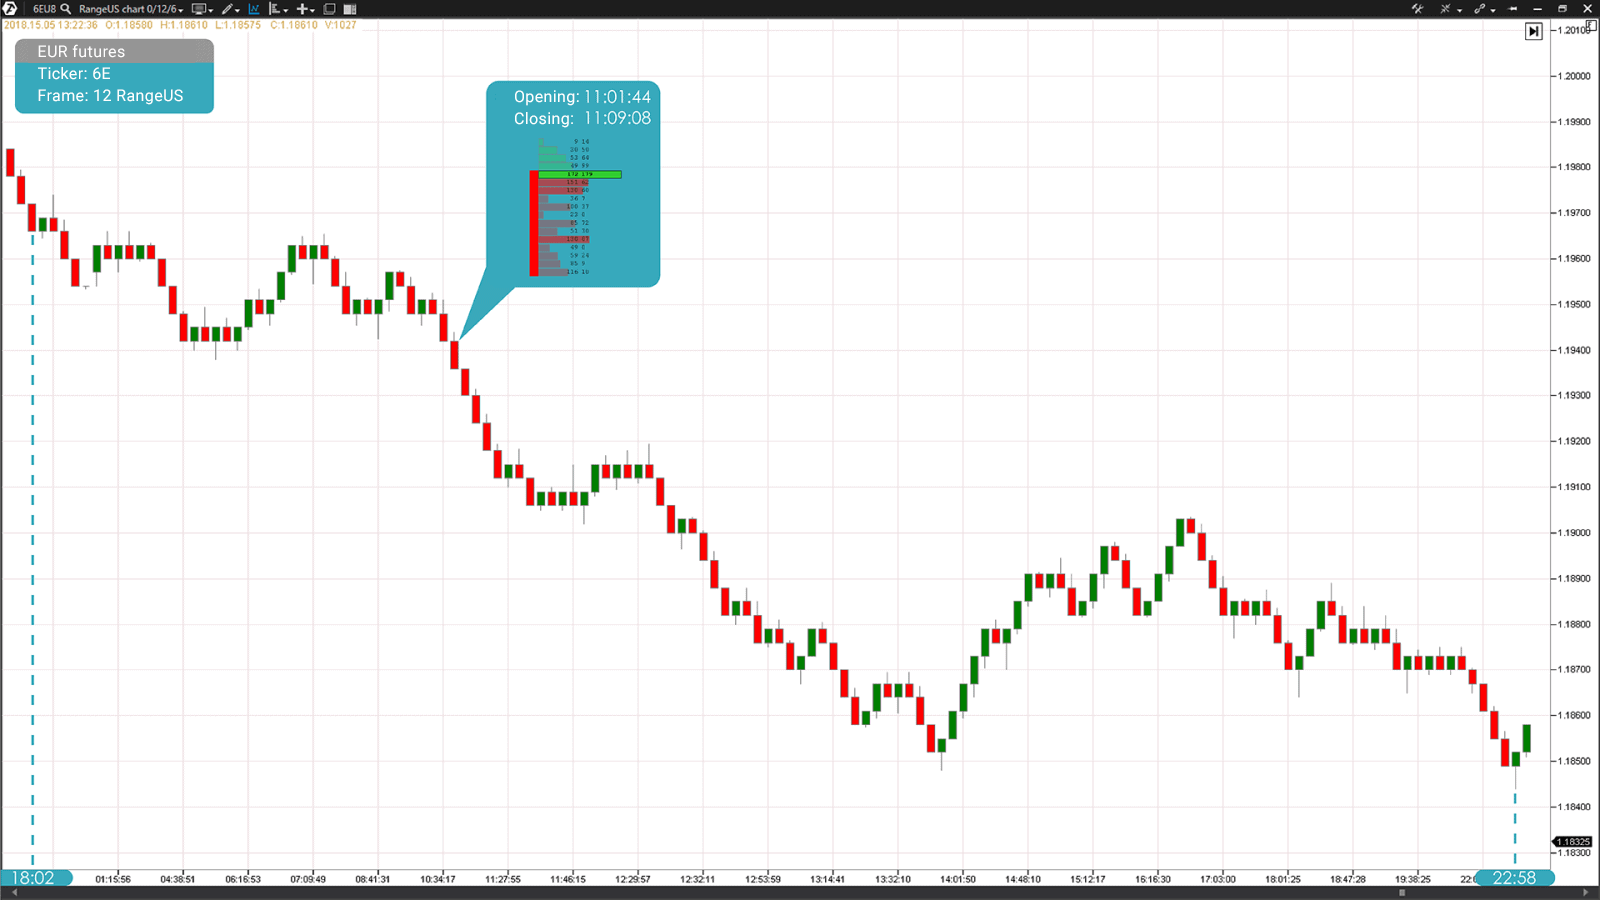 Range chart (RangeXV) of a EUR futures contract